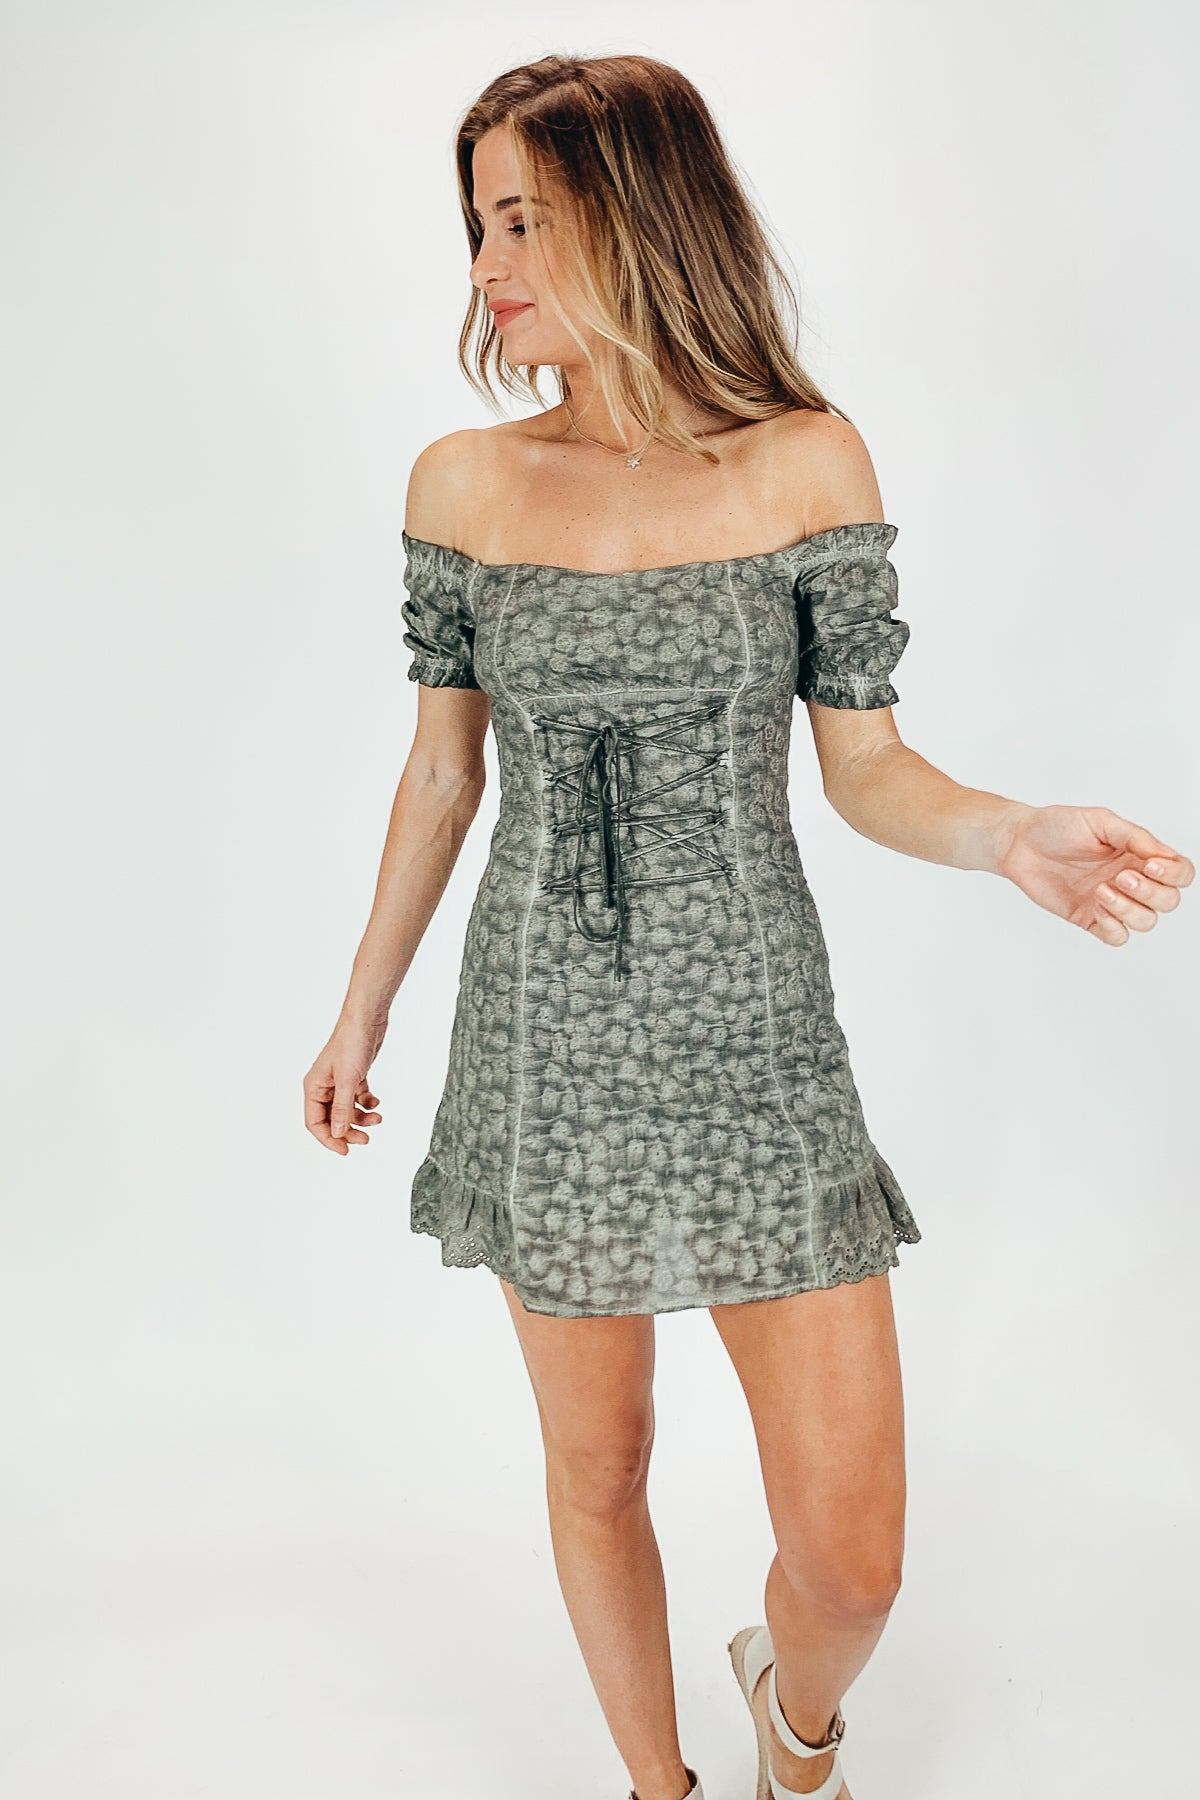 OLIVE LACE UP DRESS / FINAL CLEARANCE